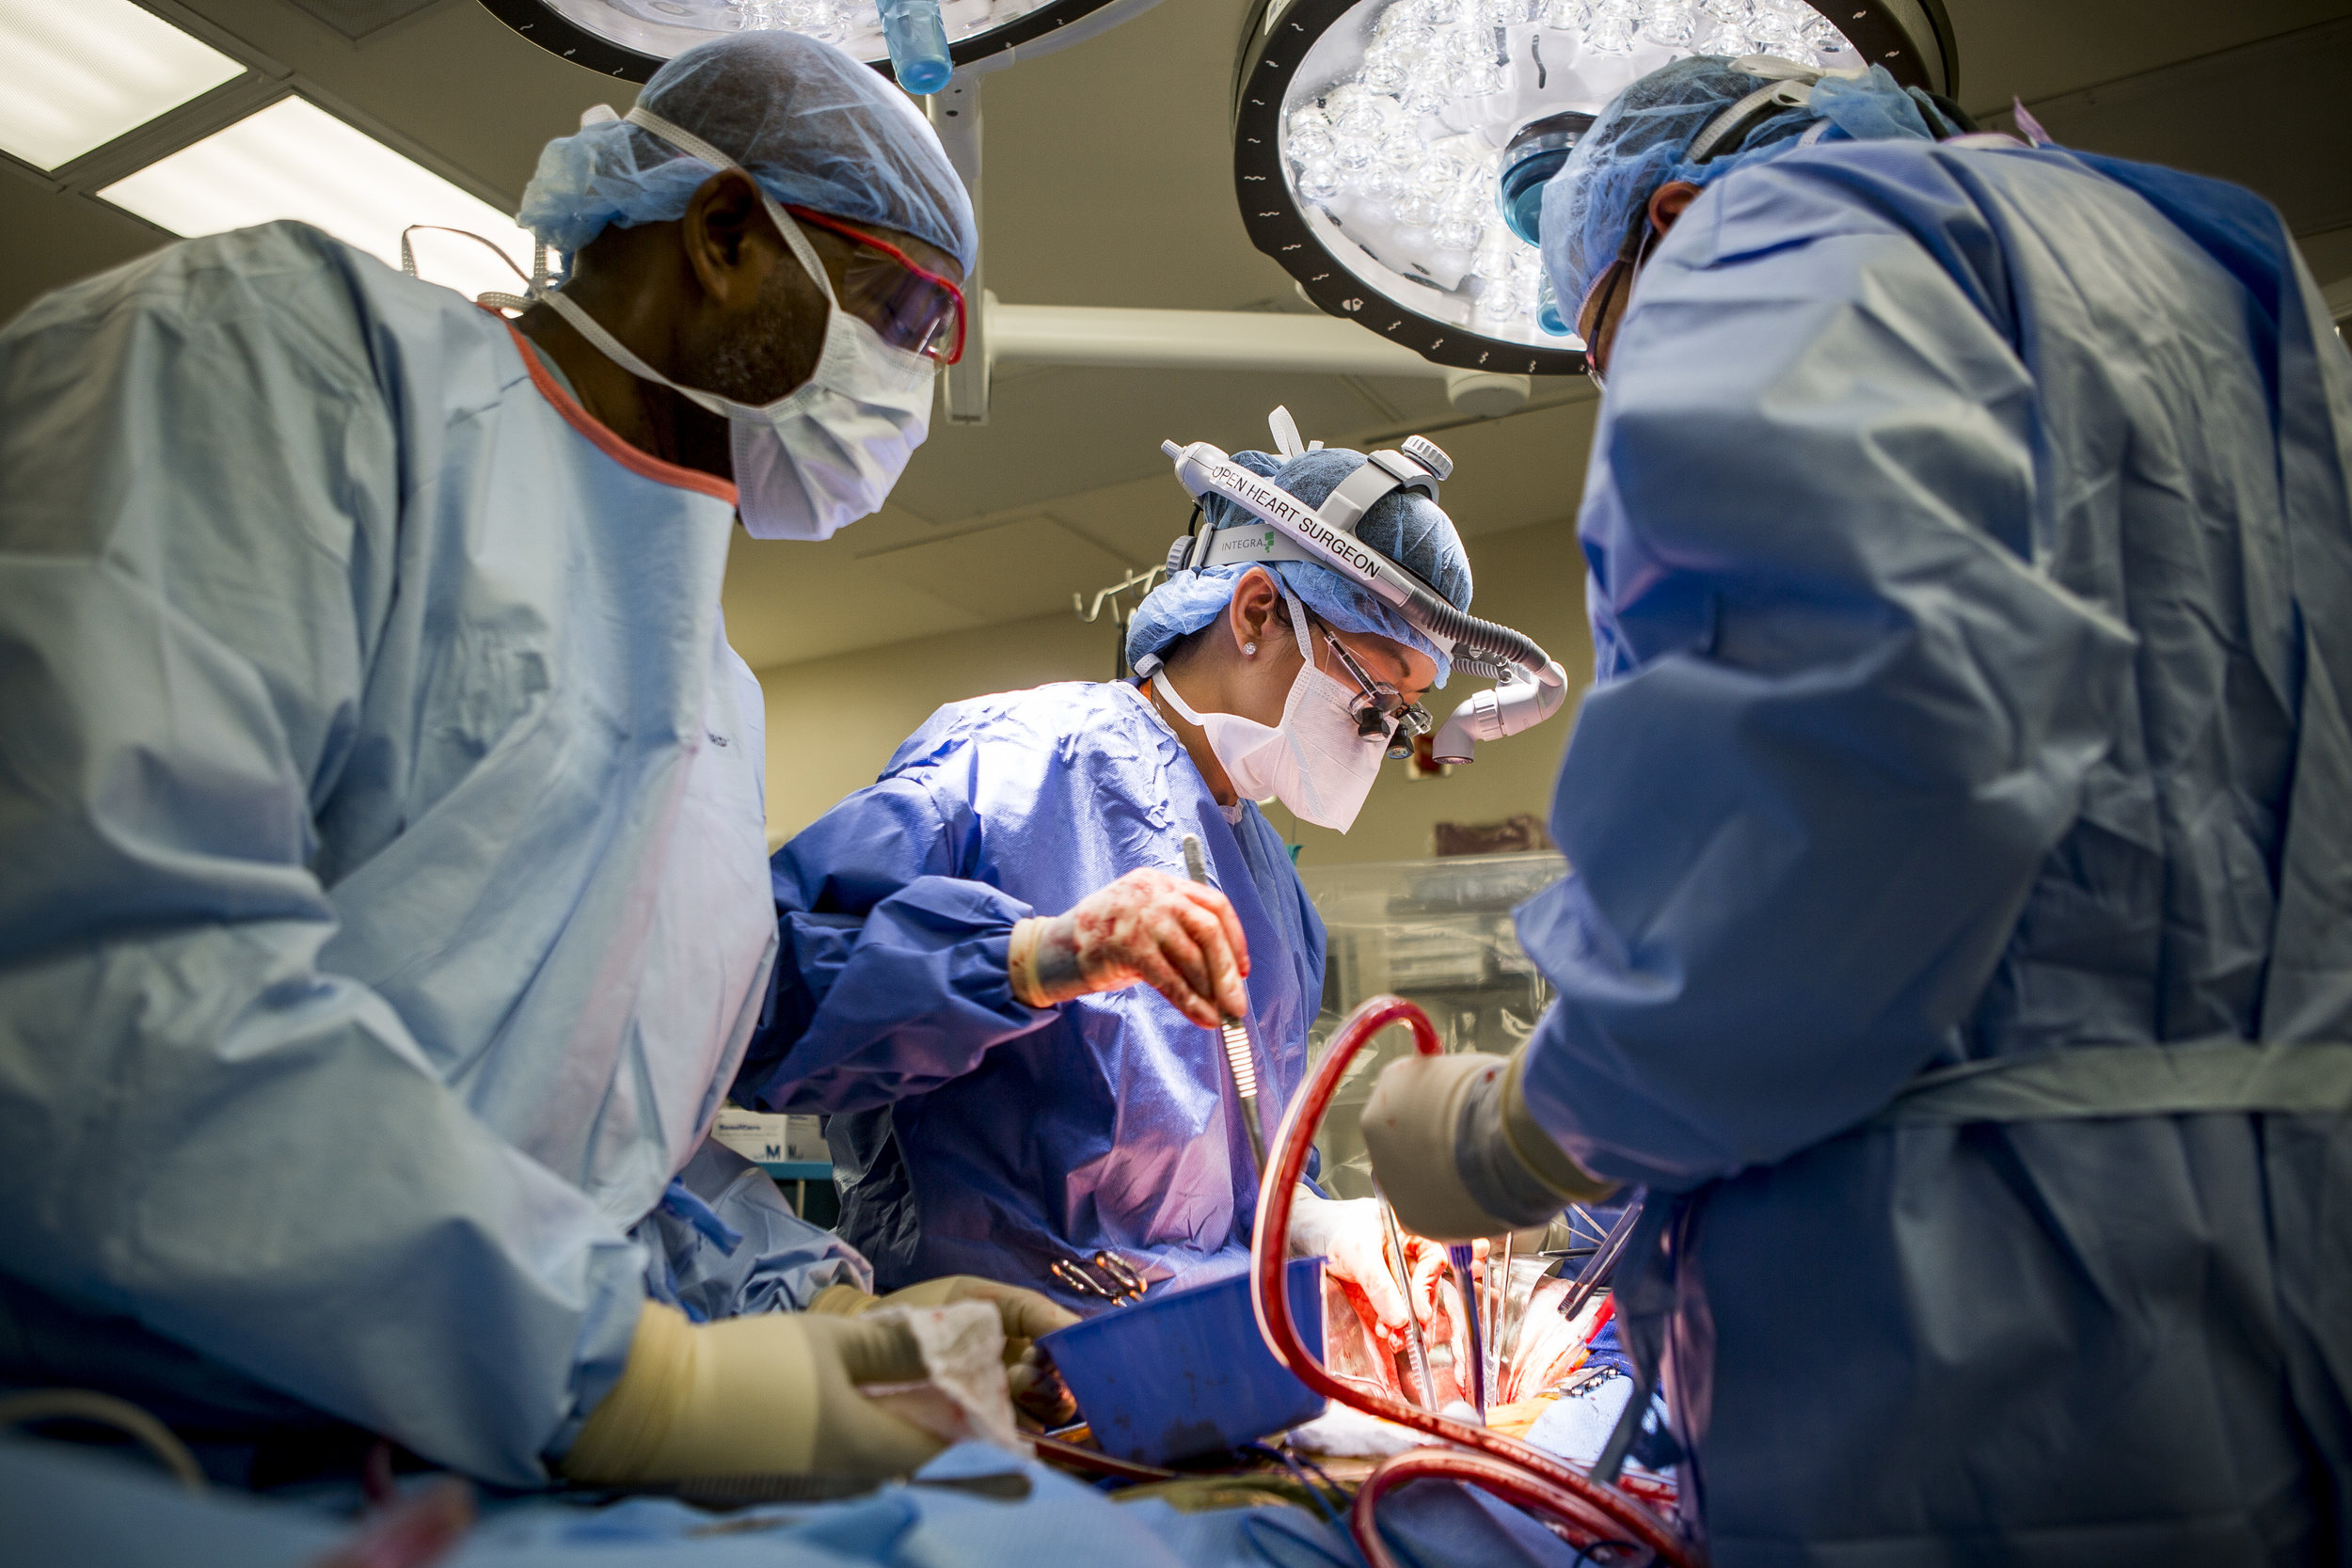 Dr. Quynh Feikesm, center, performs a surgery to fix an abdominal aneurysm with assistance from John Cousett, left, a Certified Heart Scrub Tech and assistant Tracy Blankenship at University Medical Center on Tuesday, May 23, 2017. Dr. Feikes is the only female cardiac surgeon in Nevada. Patrick Connolly Las Vegas Review-Journal @PConnPie